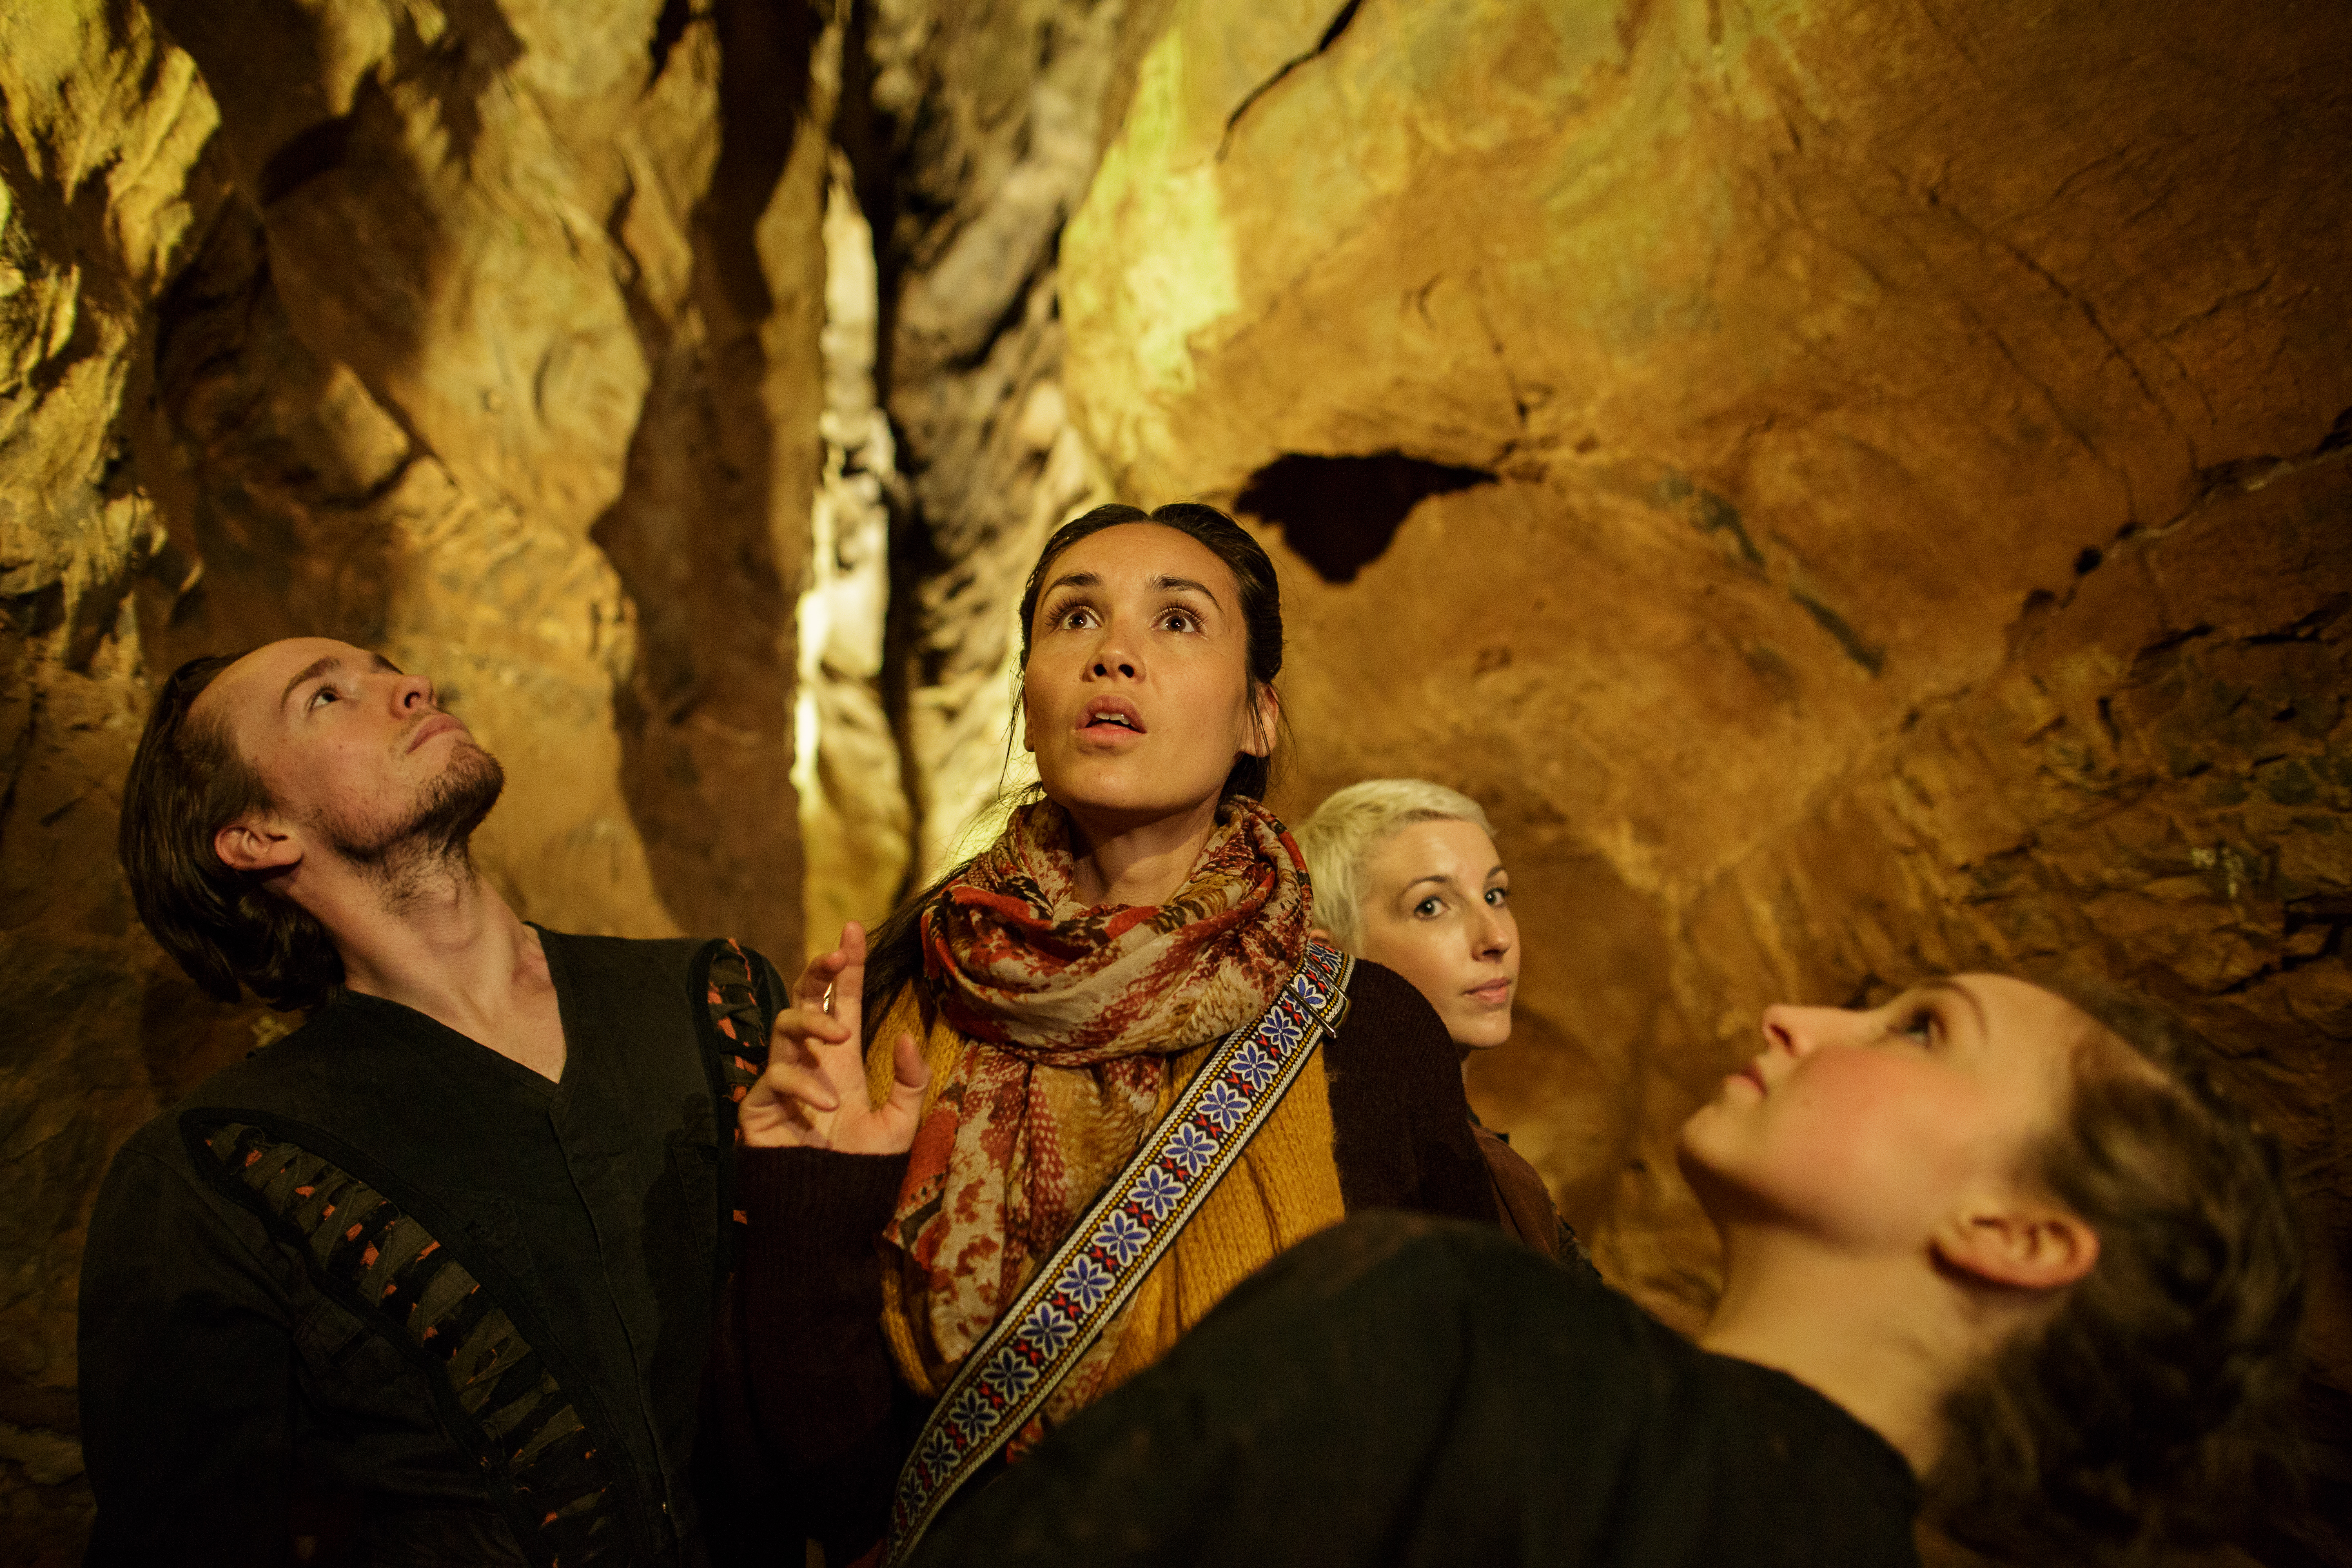 Dancers in cavern as part of Beneath Our Feet, Made By Katie Green